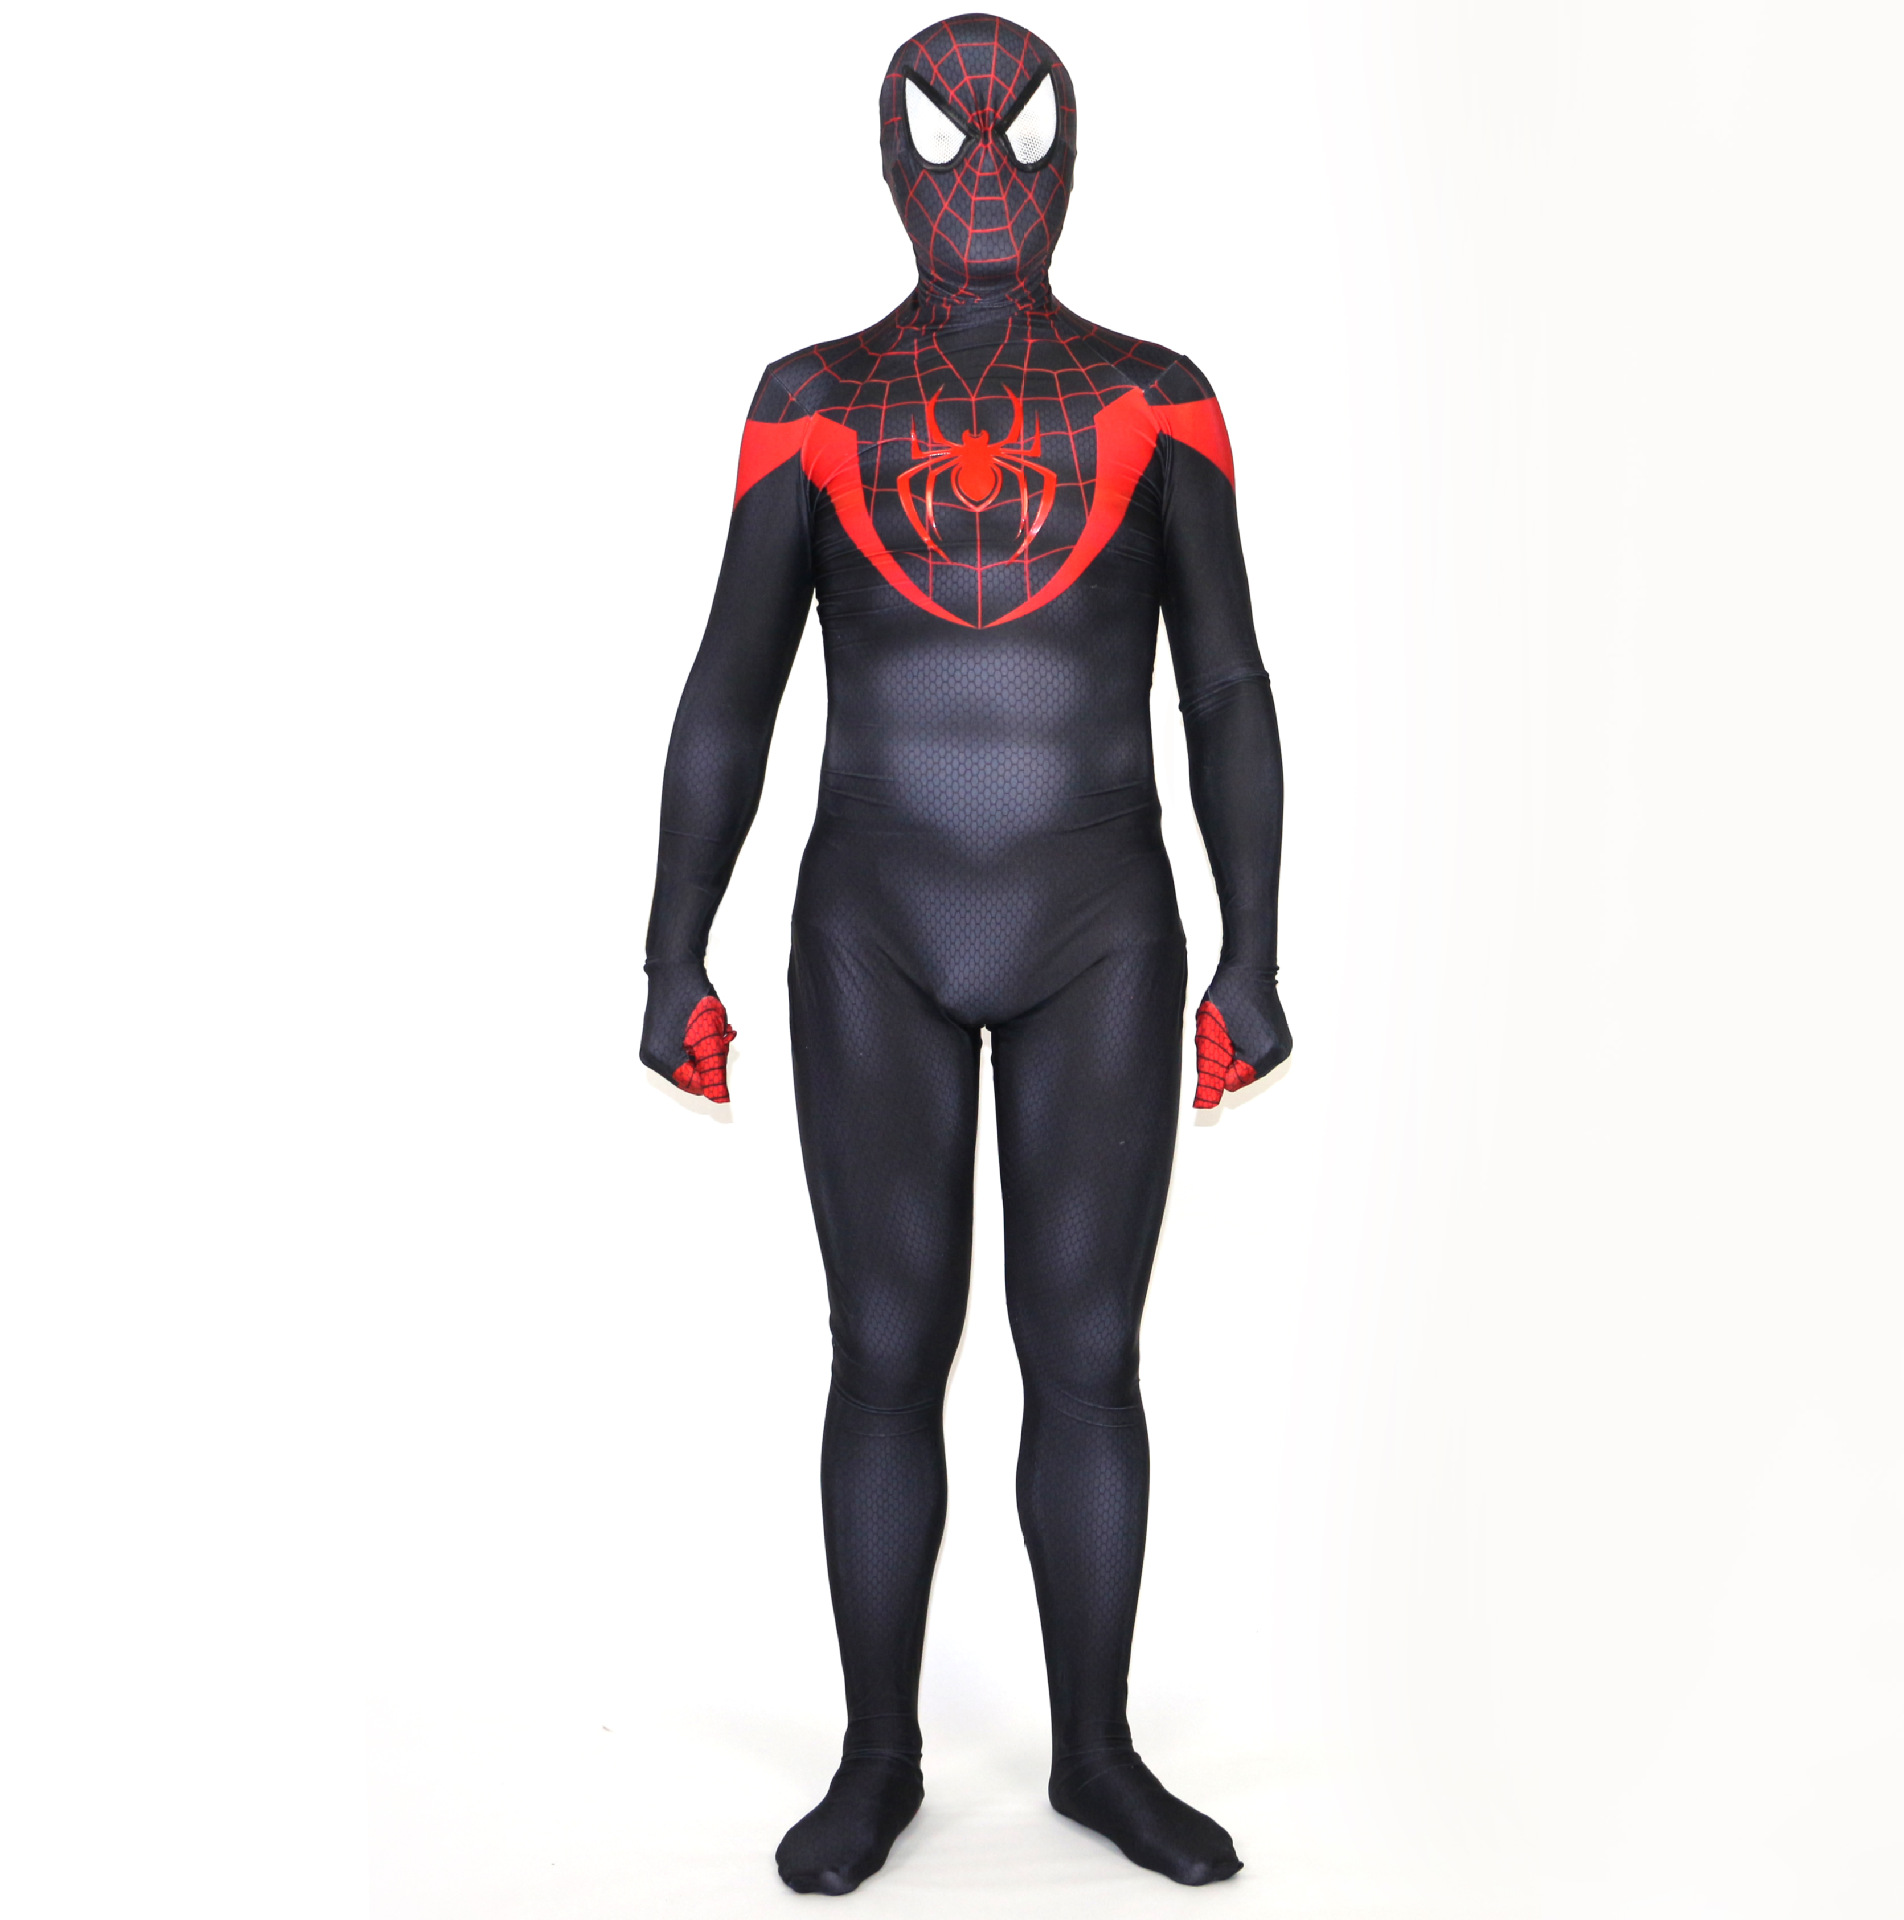 miles morales spiderman costume 3d print lycra fullbody zentai suit spiderman cosplay halloween costume